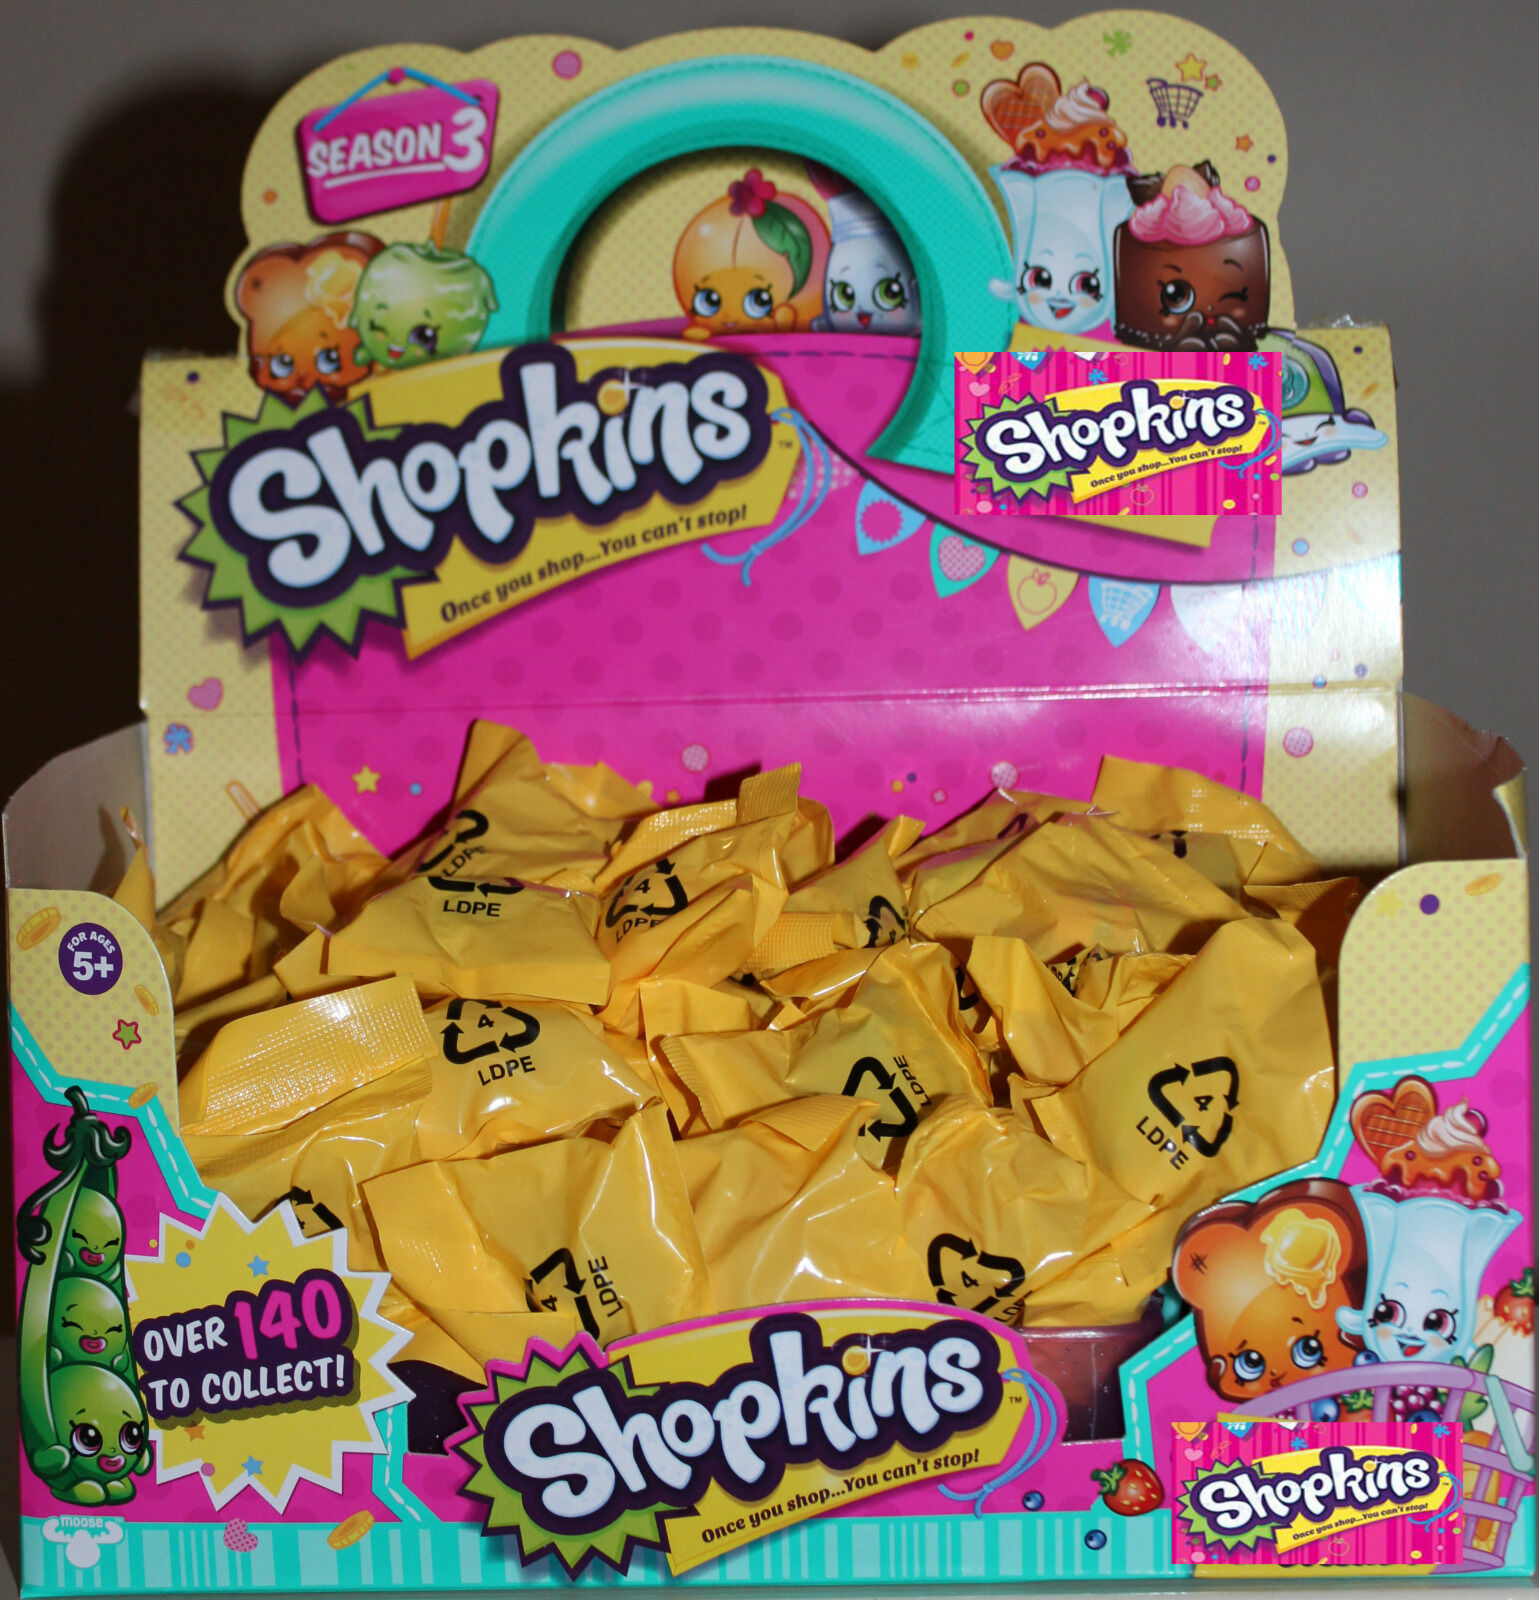 15 x x x Shopkins Season 3 Blind Bags - UNOPENED - 1102f3